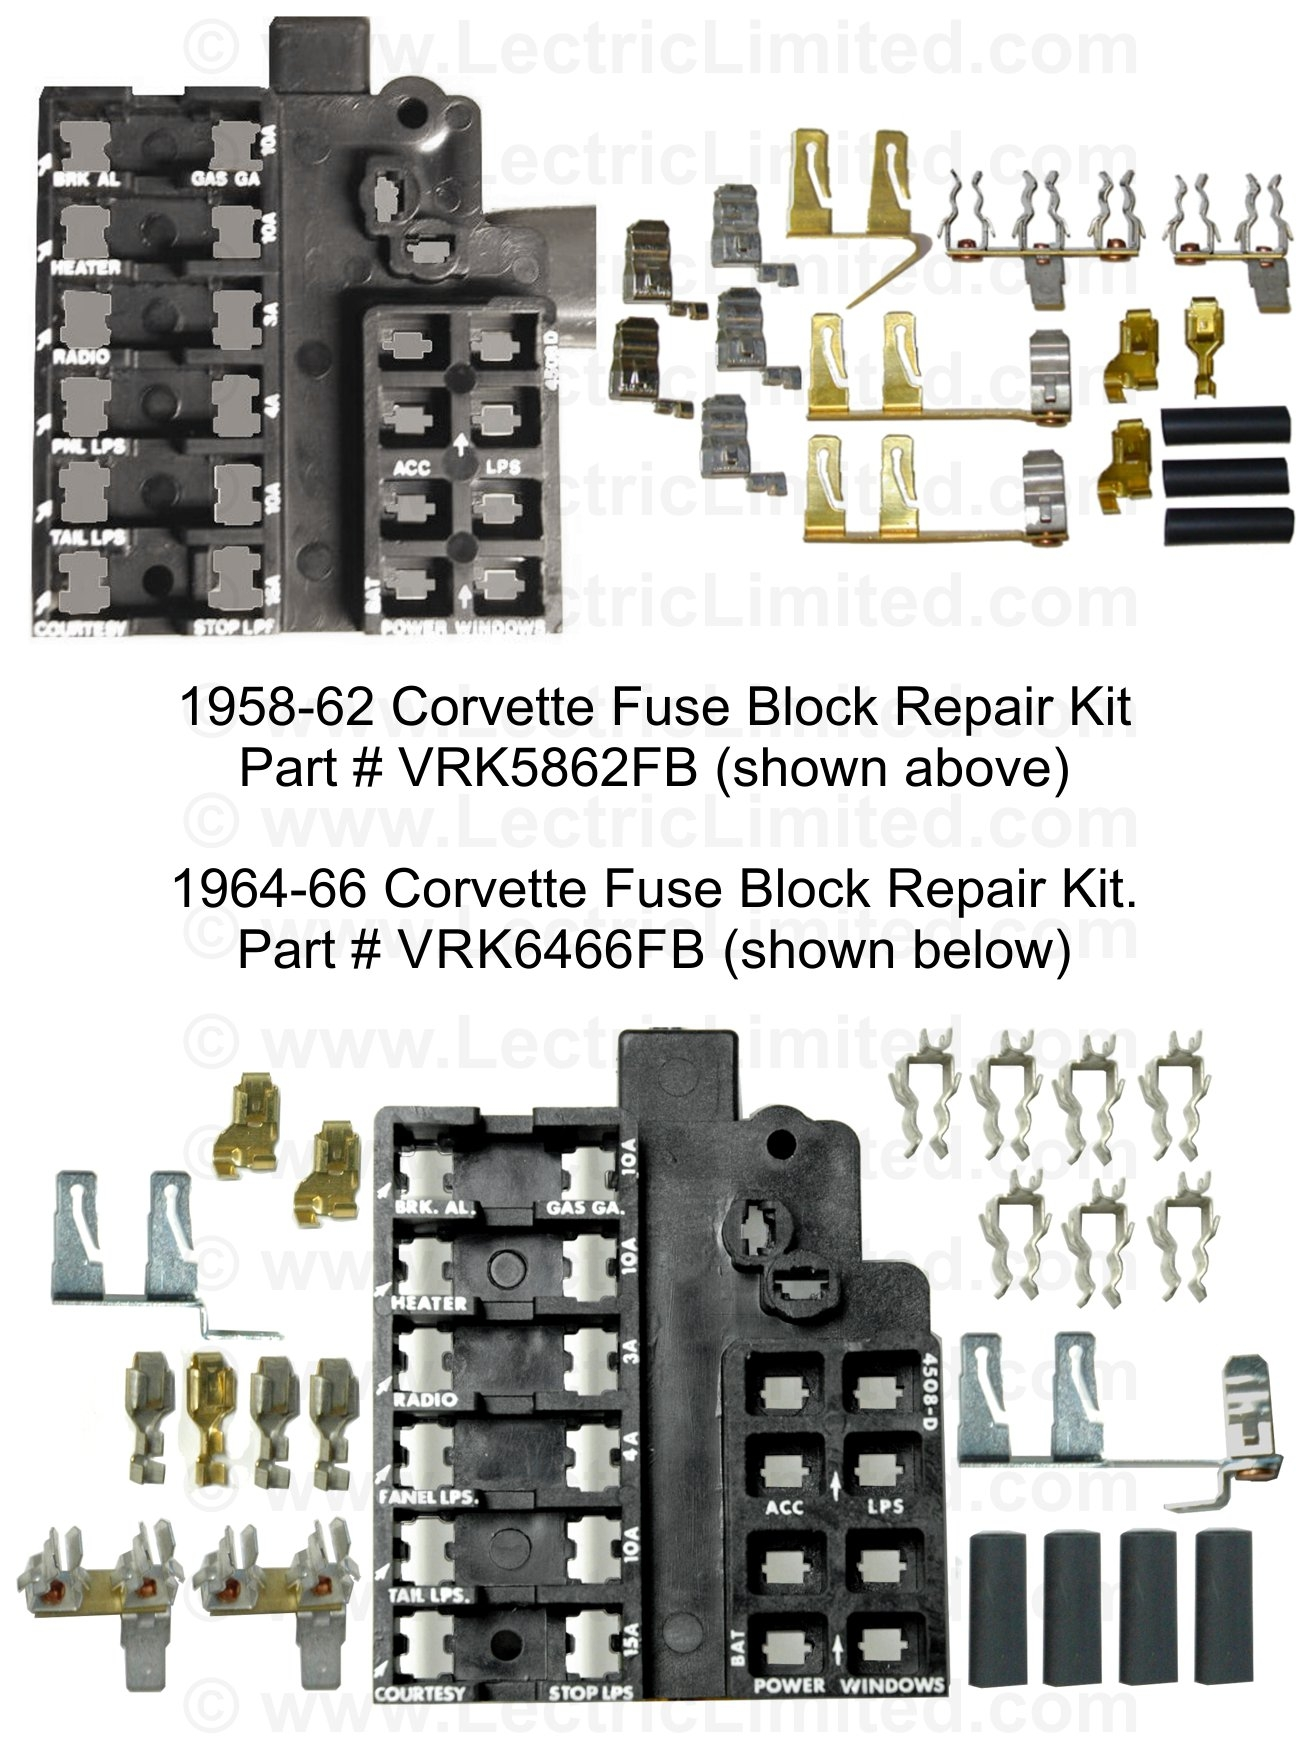 Jeep Liberty Fuse Box 2004 Wiring Library Electrical Repair Kit Detailed Schematics Diagram Rh Keyplusrubber Com 1998 Cherokee Panel